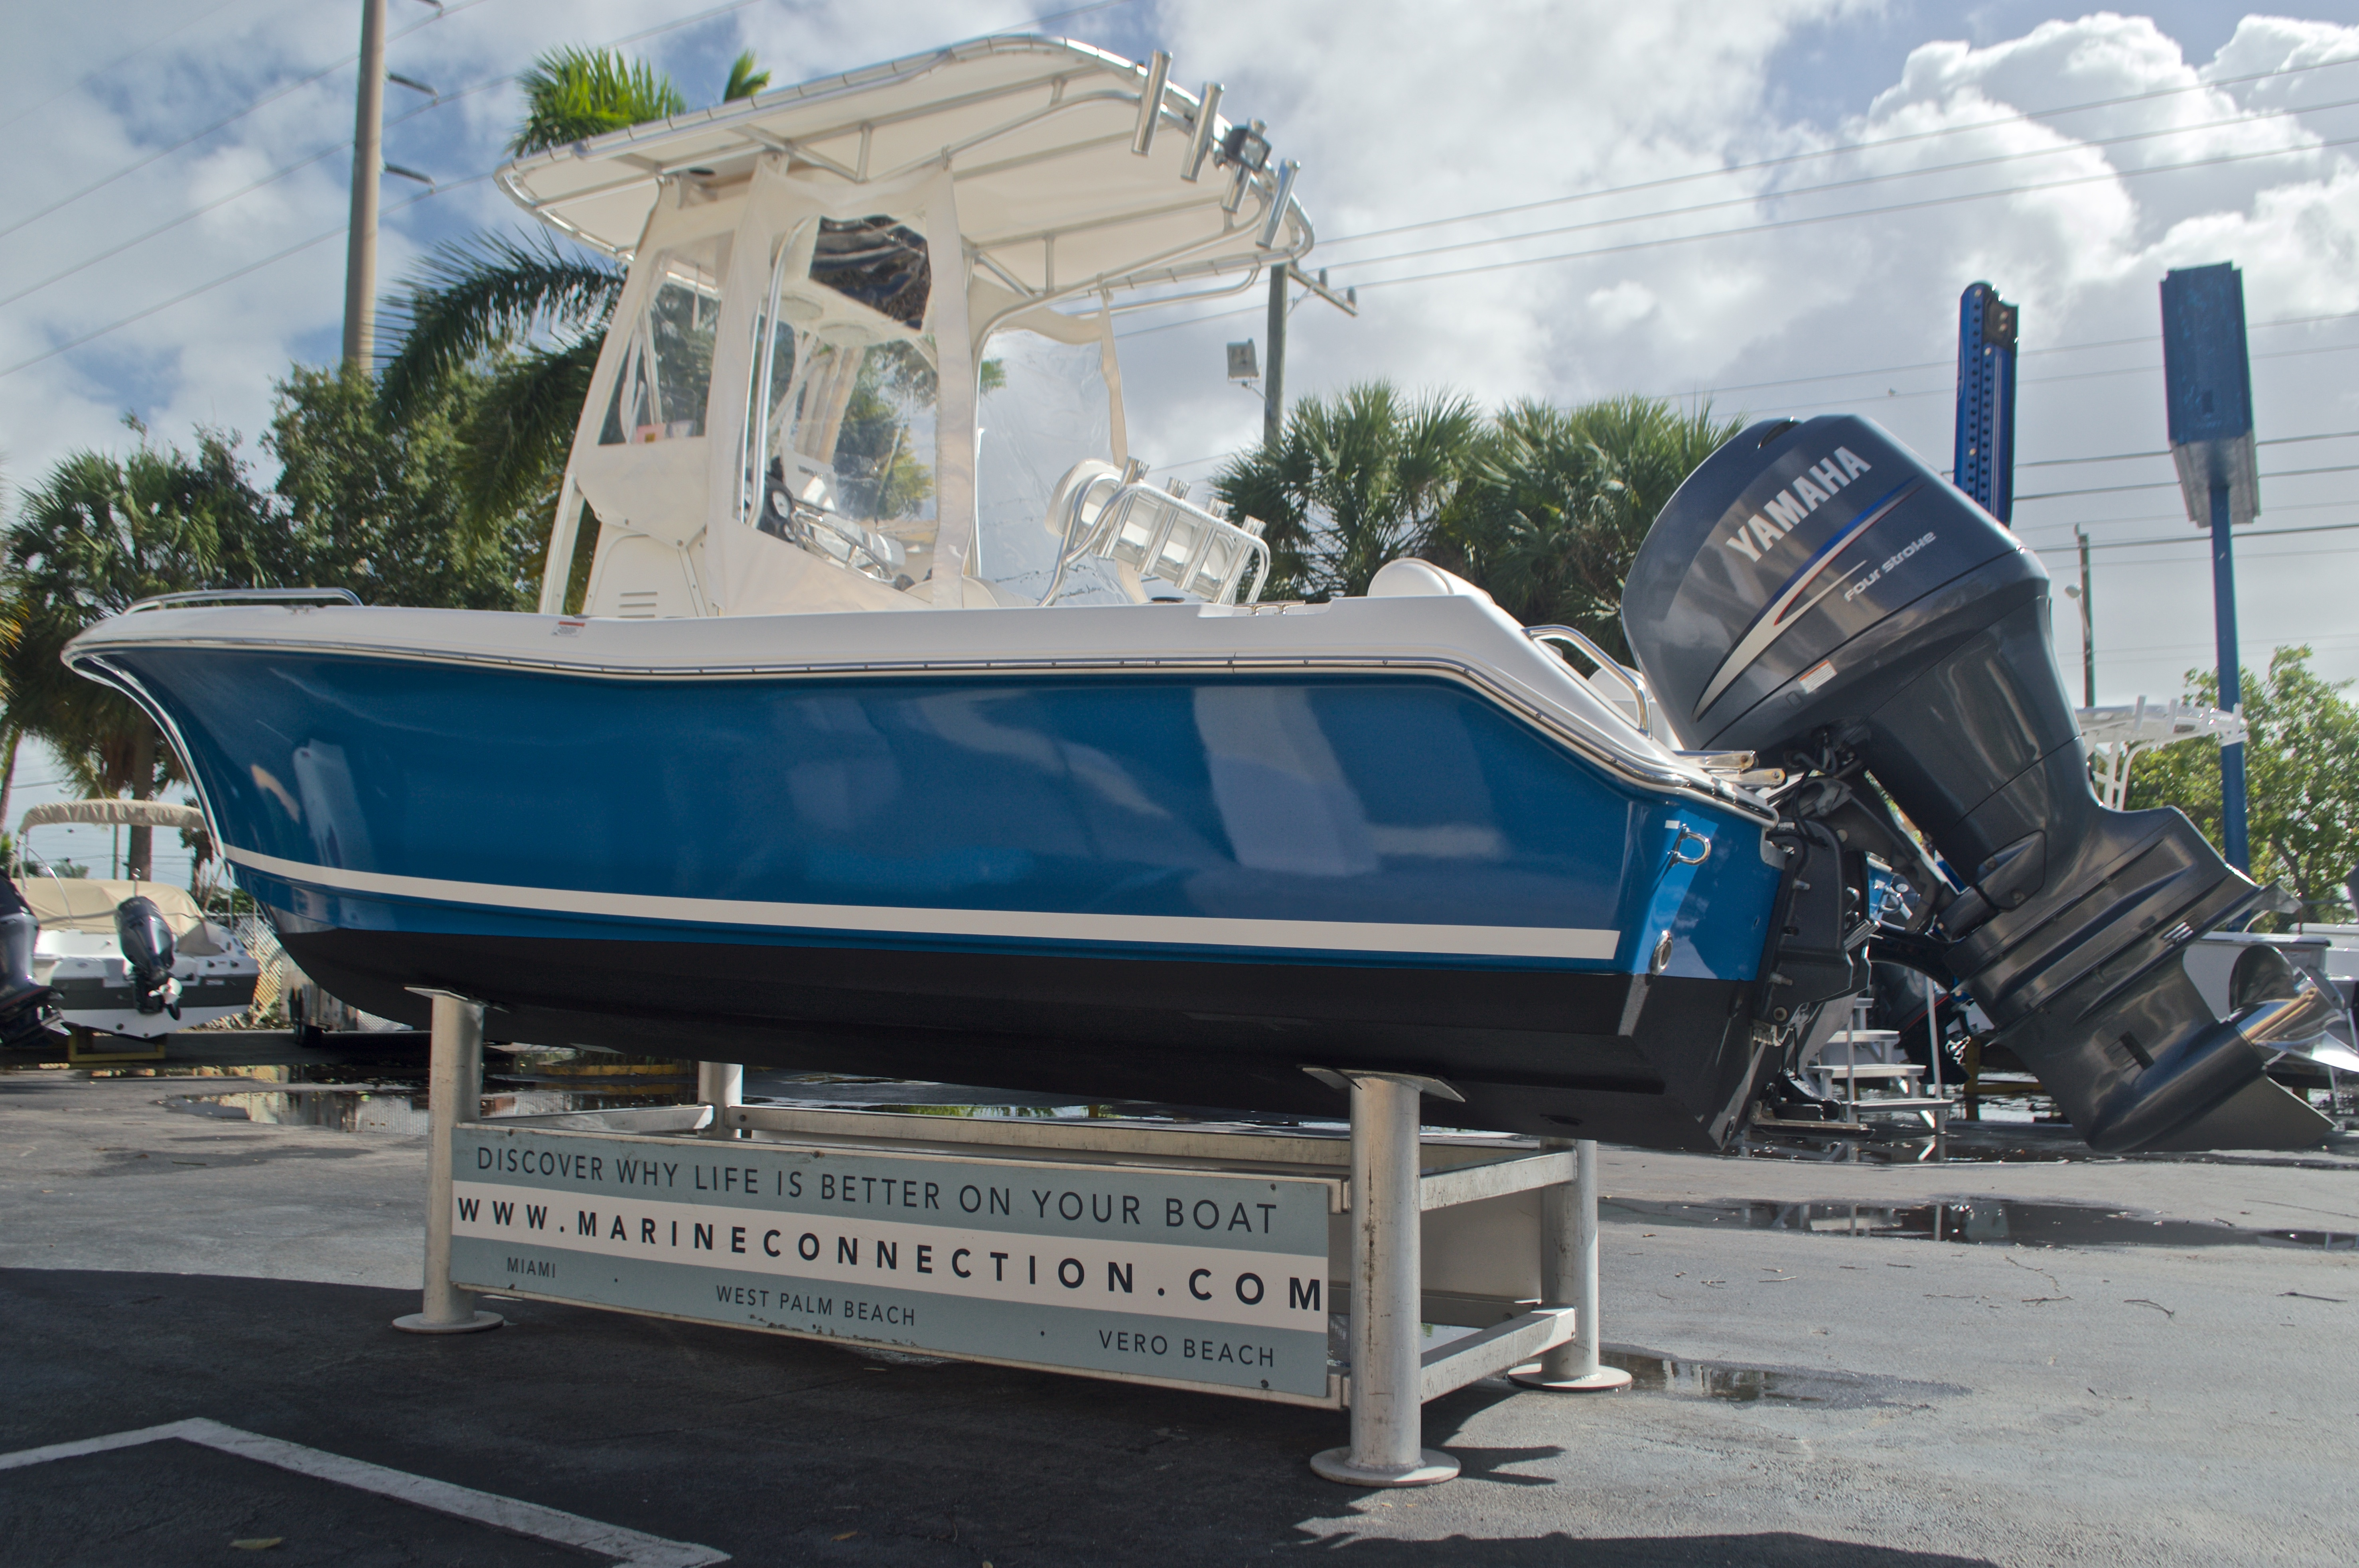 Thumbnail 7 for Used 2009 Sea Hunt 207 Triton boat for sale in West Palm Beach, FL